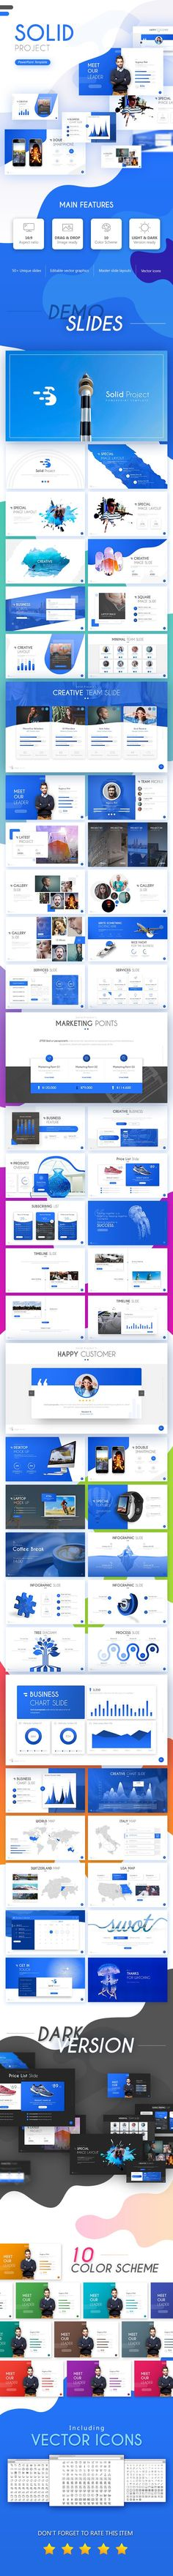 Solid Project PowerPoint Template - 55 Multipurpose Slides, Clean, Unique, Creative and Simple